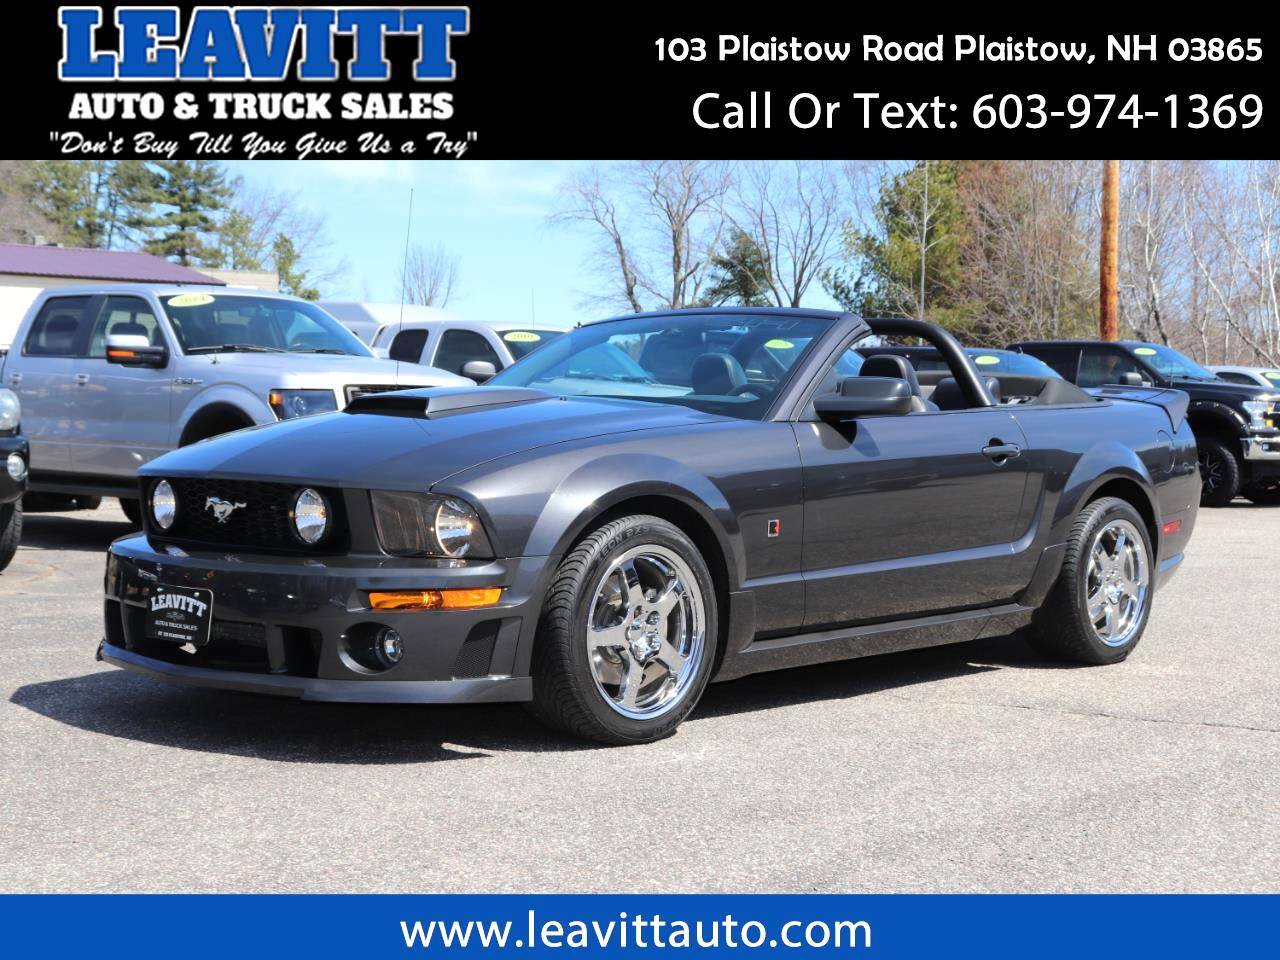 2007 Ford Mustang Roush Convertible